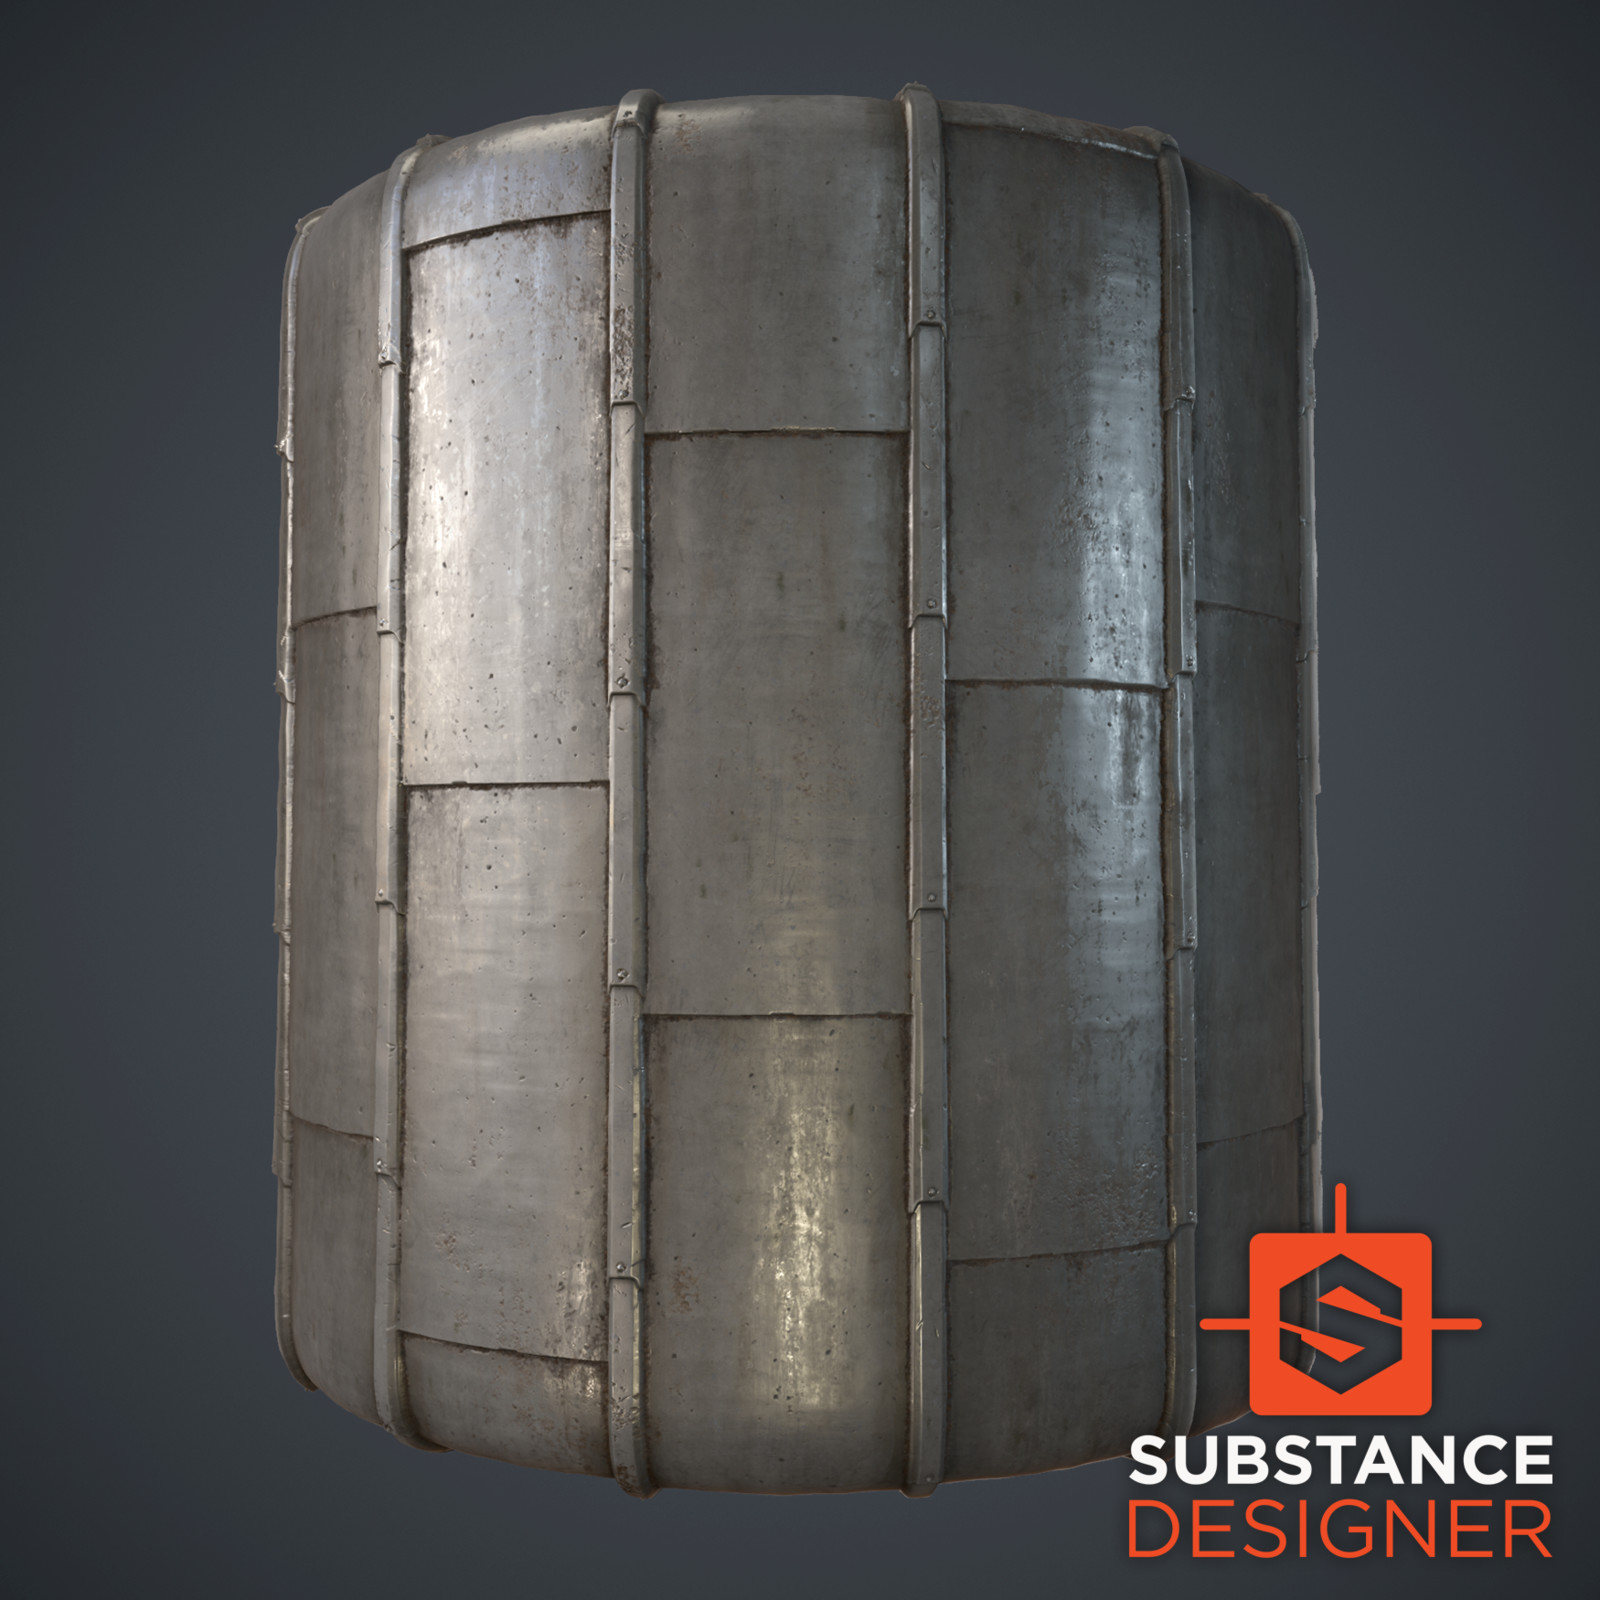 Zinc Roof (Substance Designer)